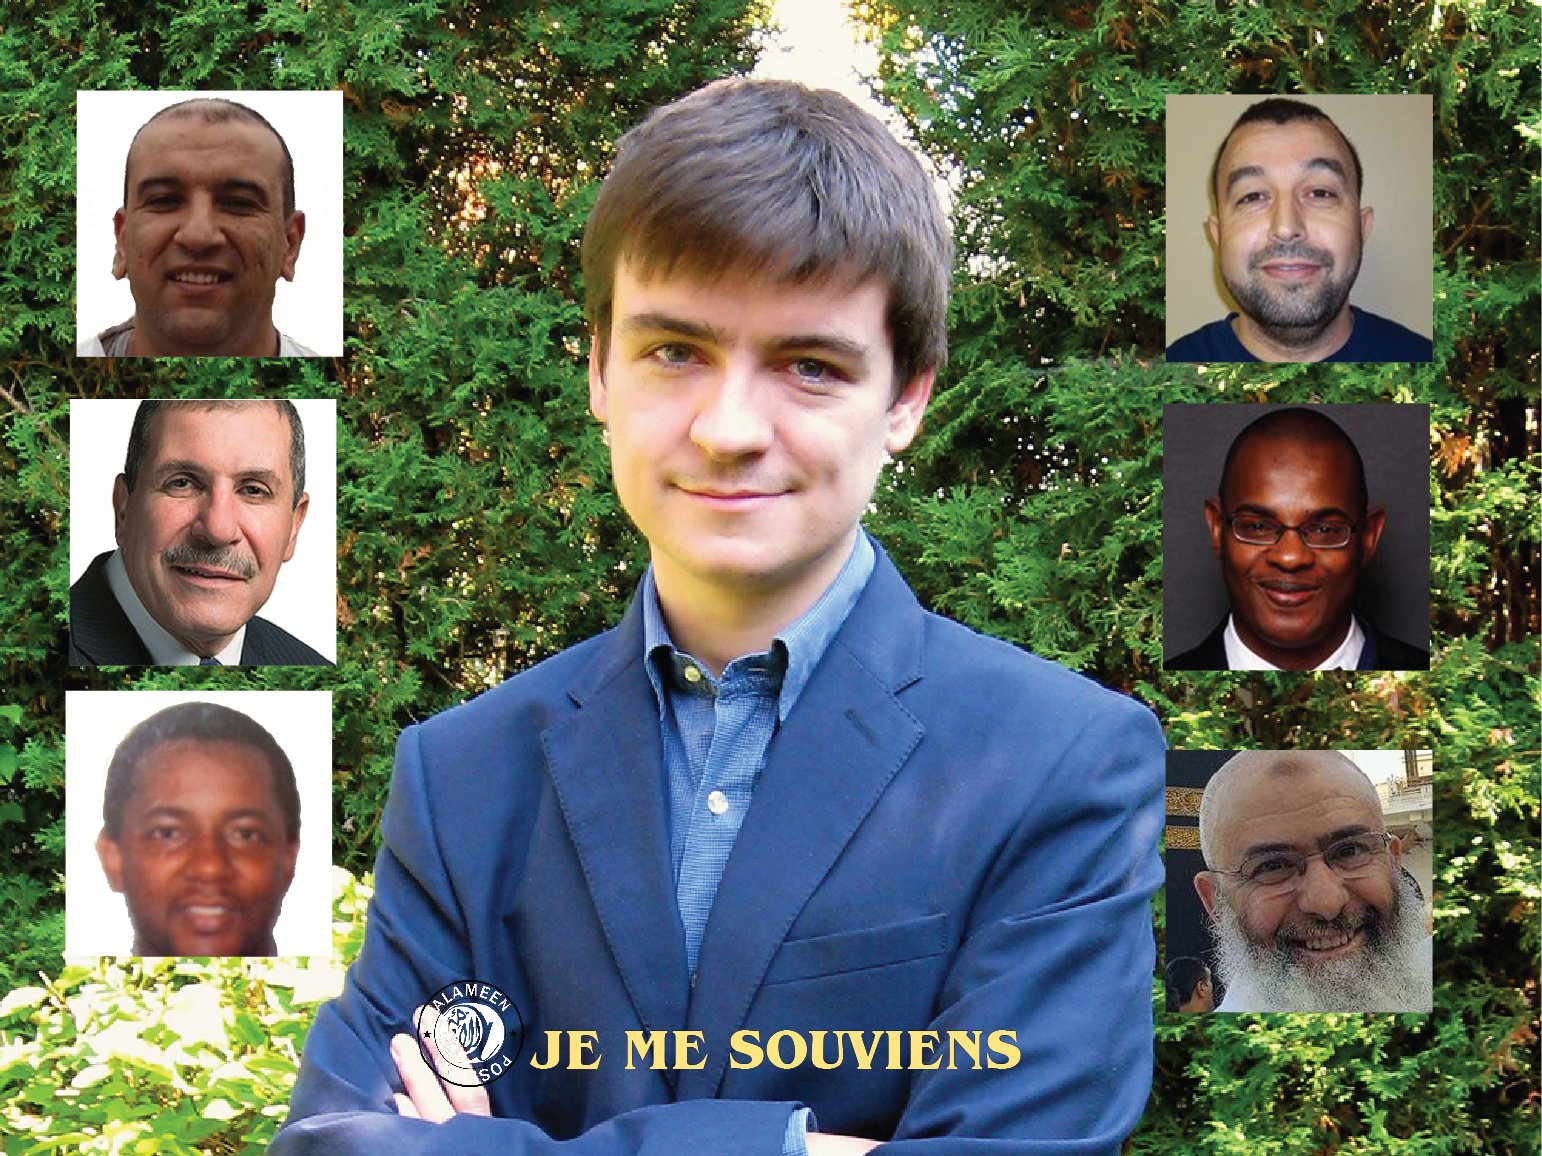 """NCCM: Decision not to charge Quebec mosque shooter with terrorism """"deeply concerning"""""""